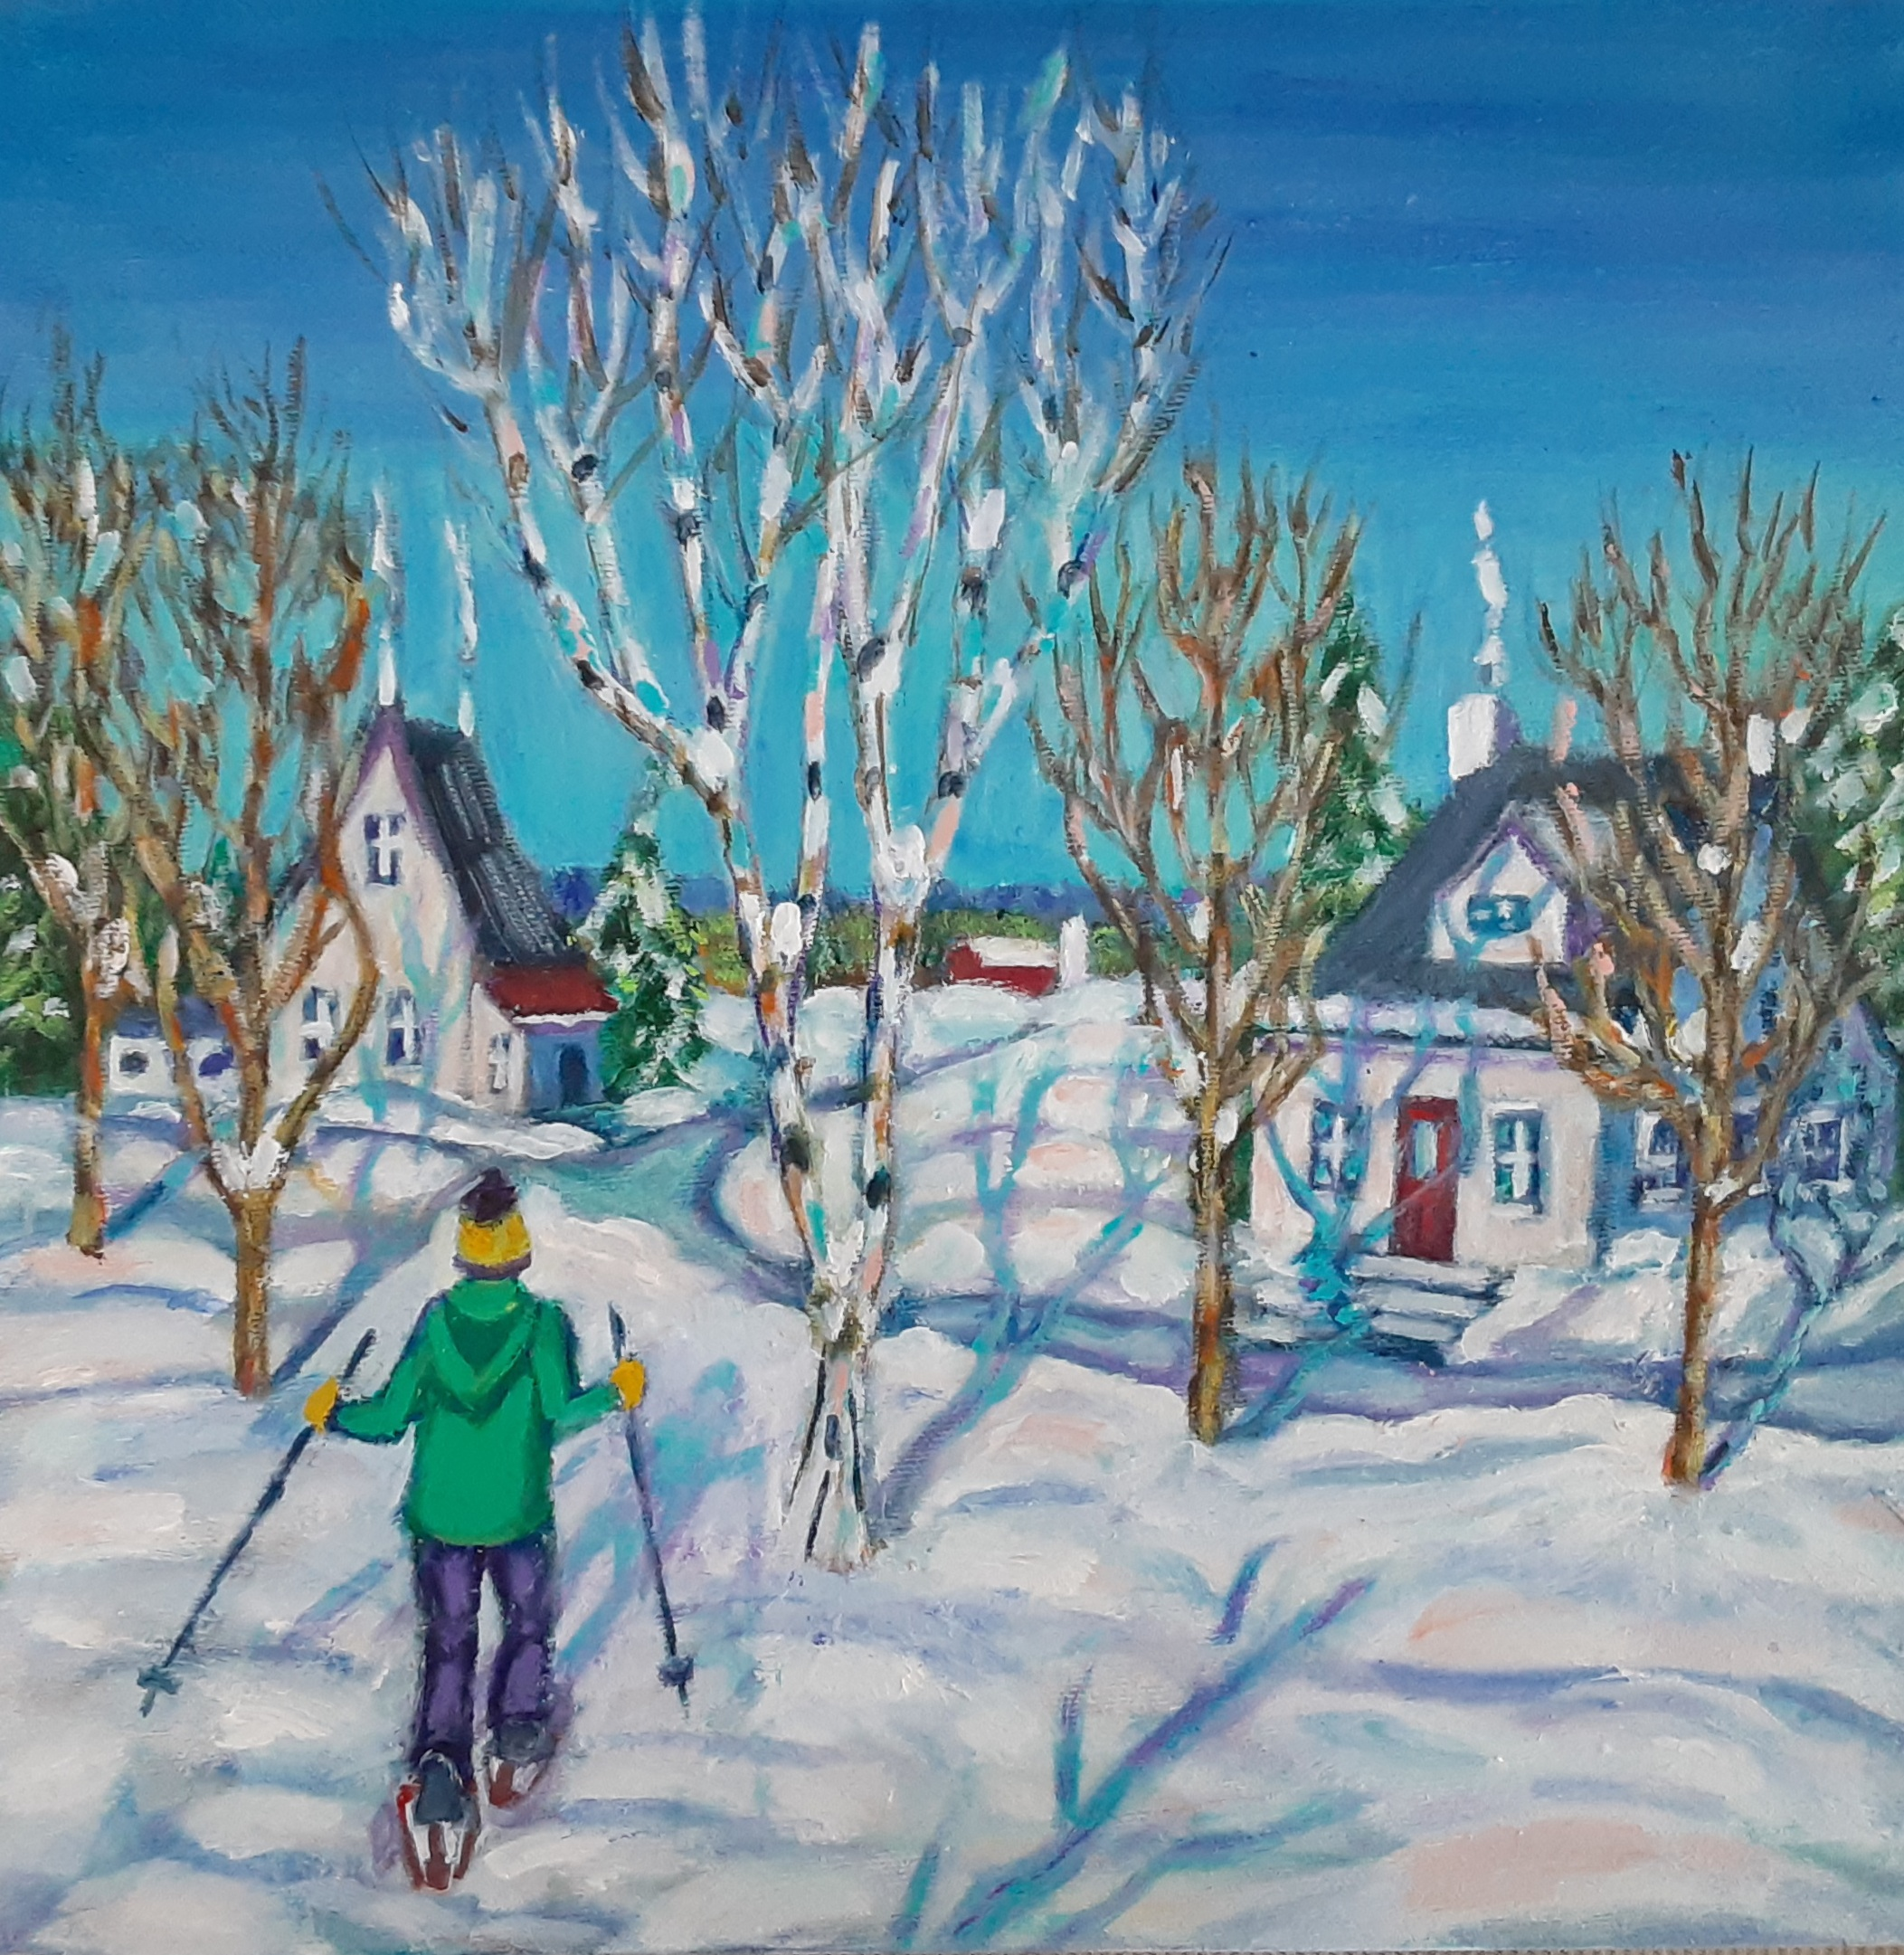 Sun and Snowshows by Mary Linda Tait